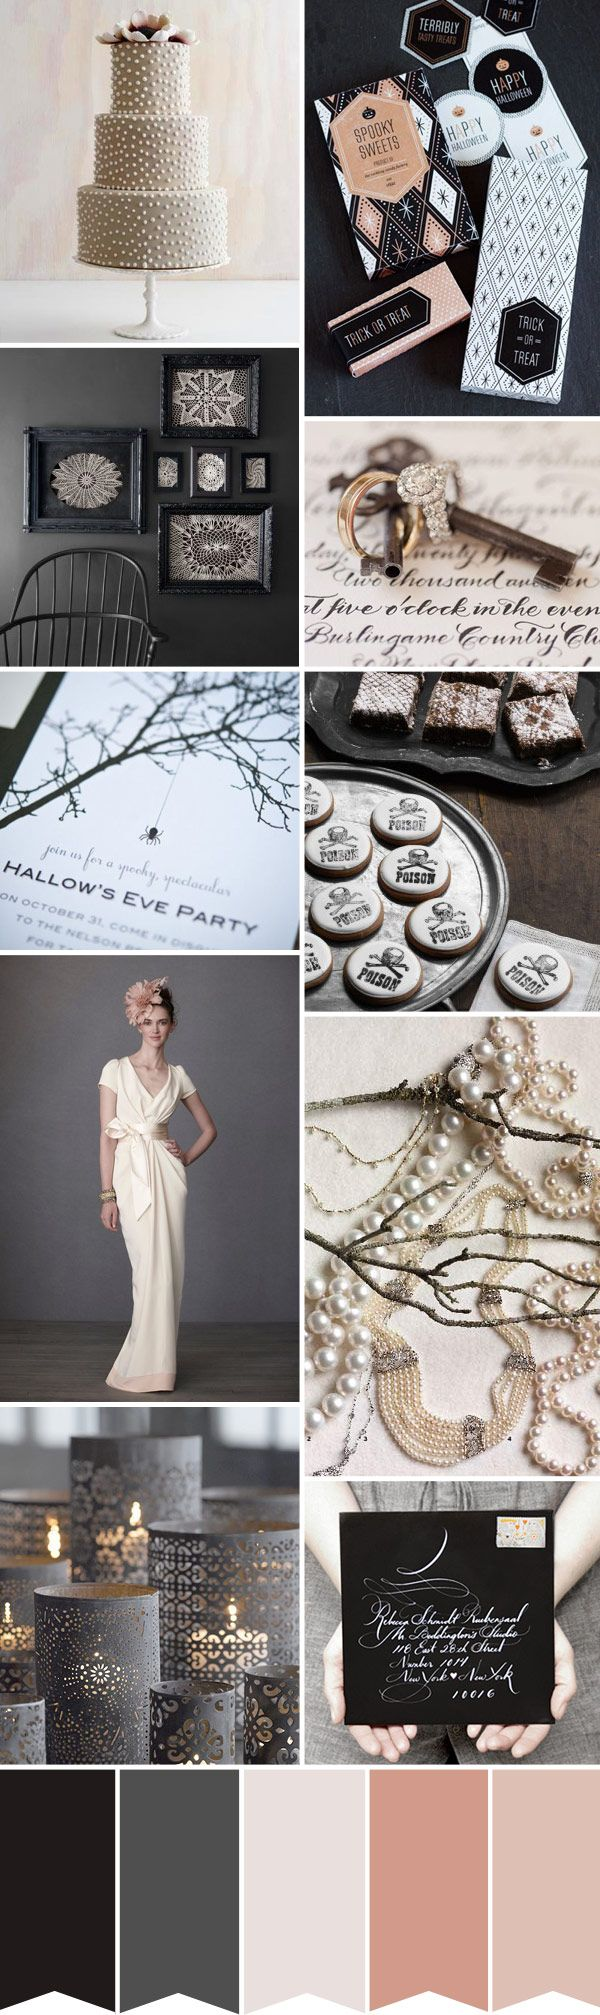 Halloween Wedding Colour Palette - Read more on One Fab Day: http://onefabday.com/halloween-wedding-spookishly-chic-inspiration/